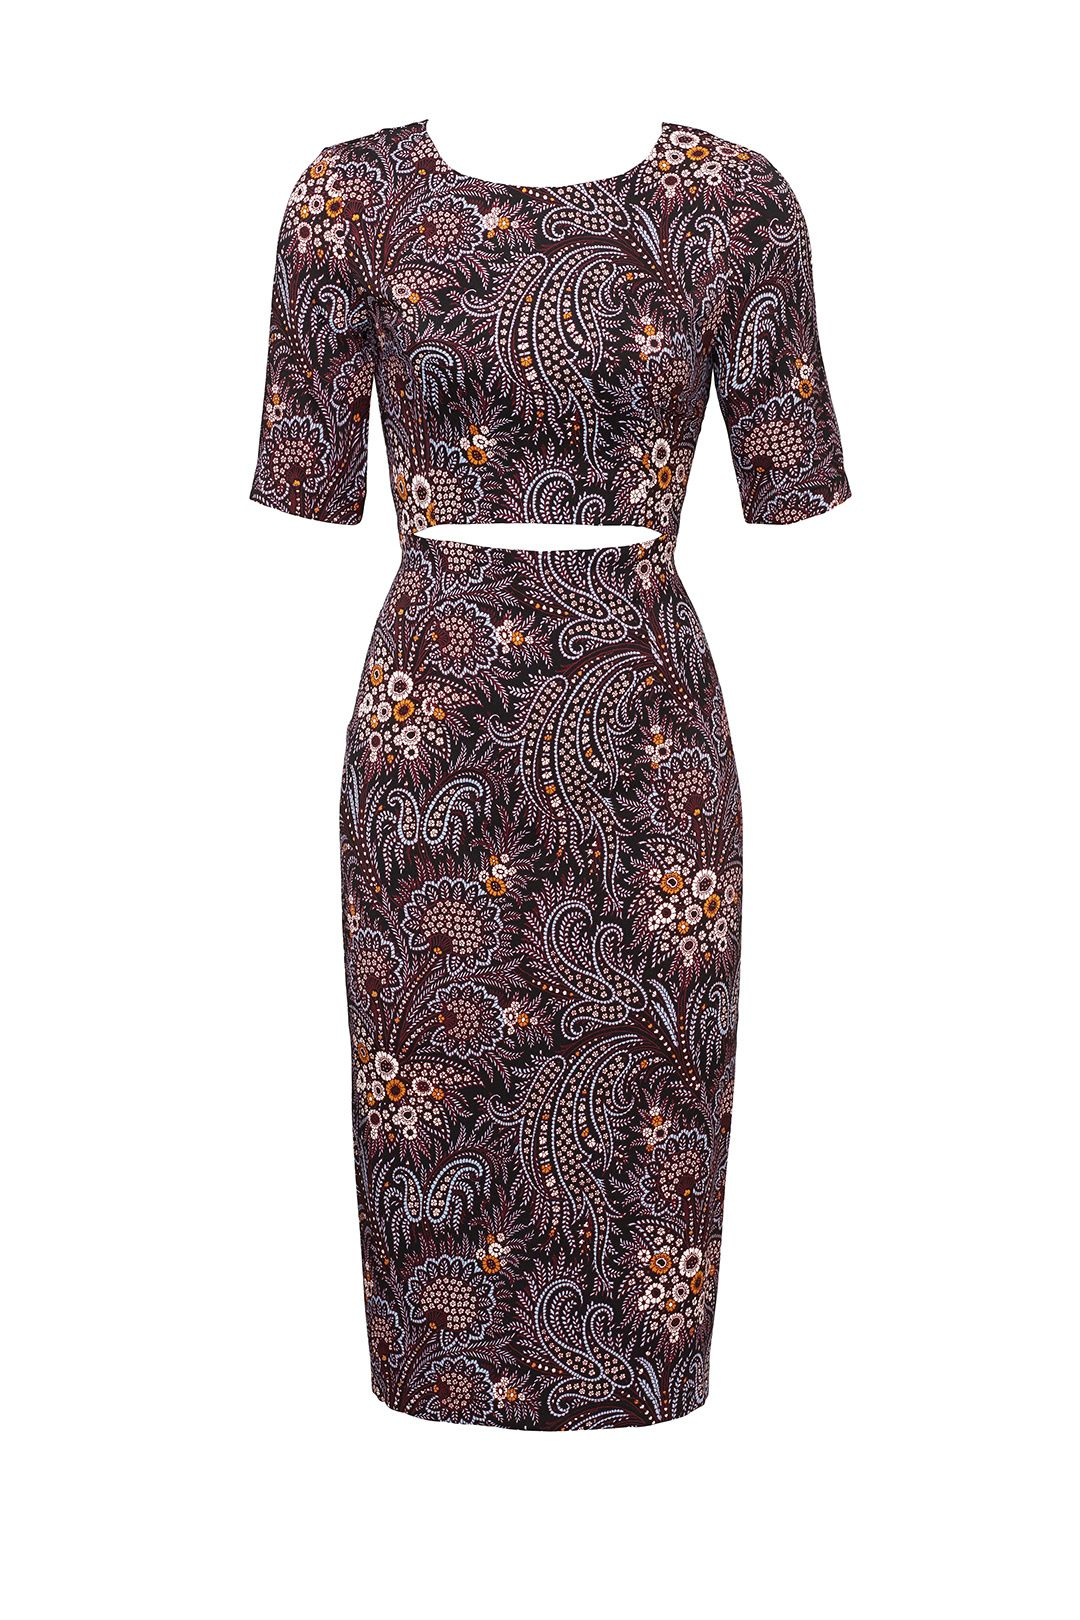 Paisley wine cut out dress designers clothes and shopping